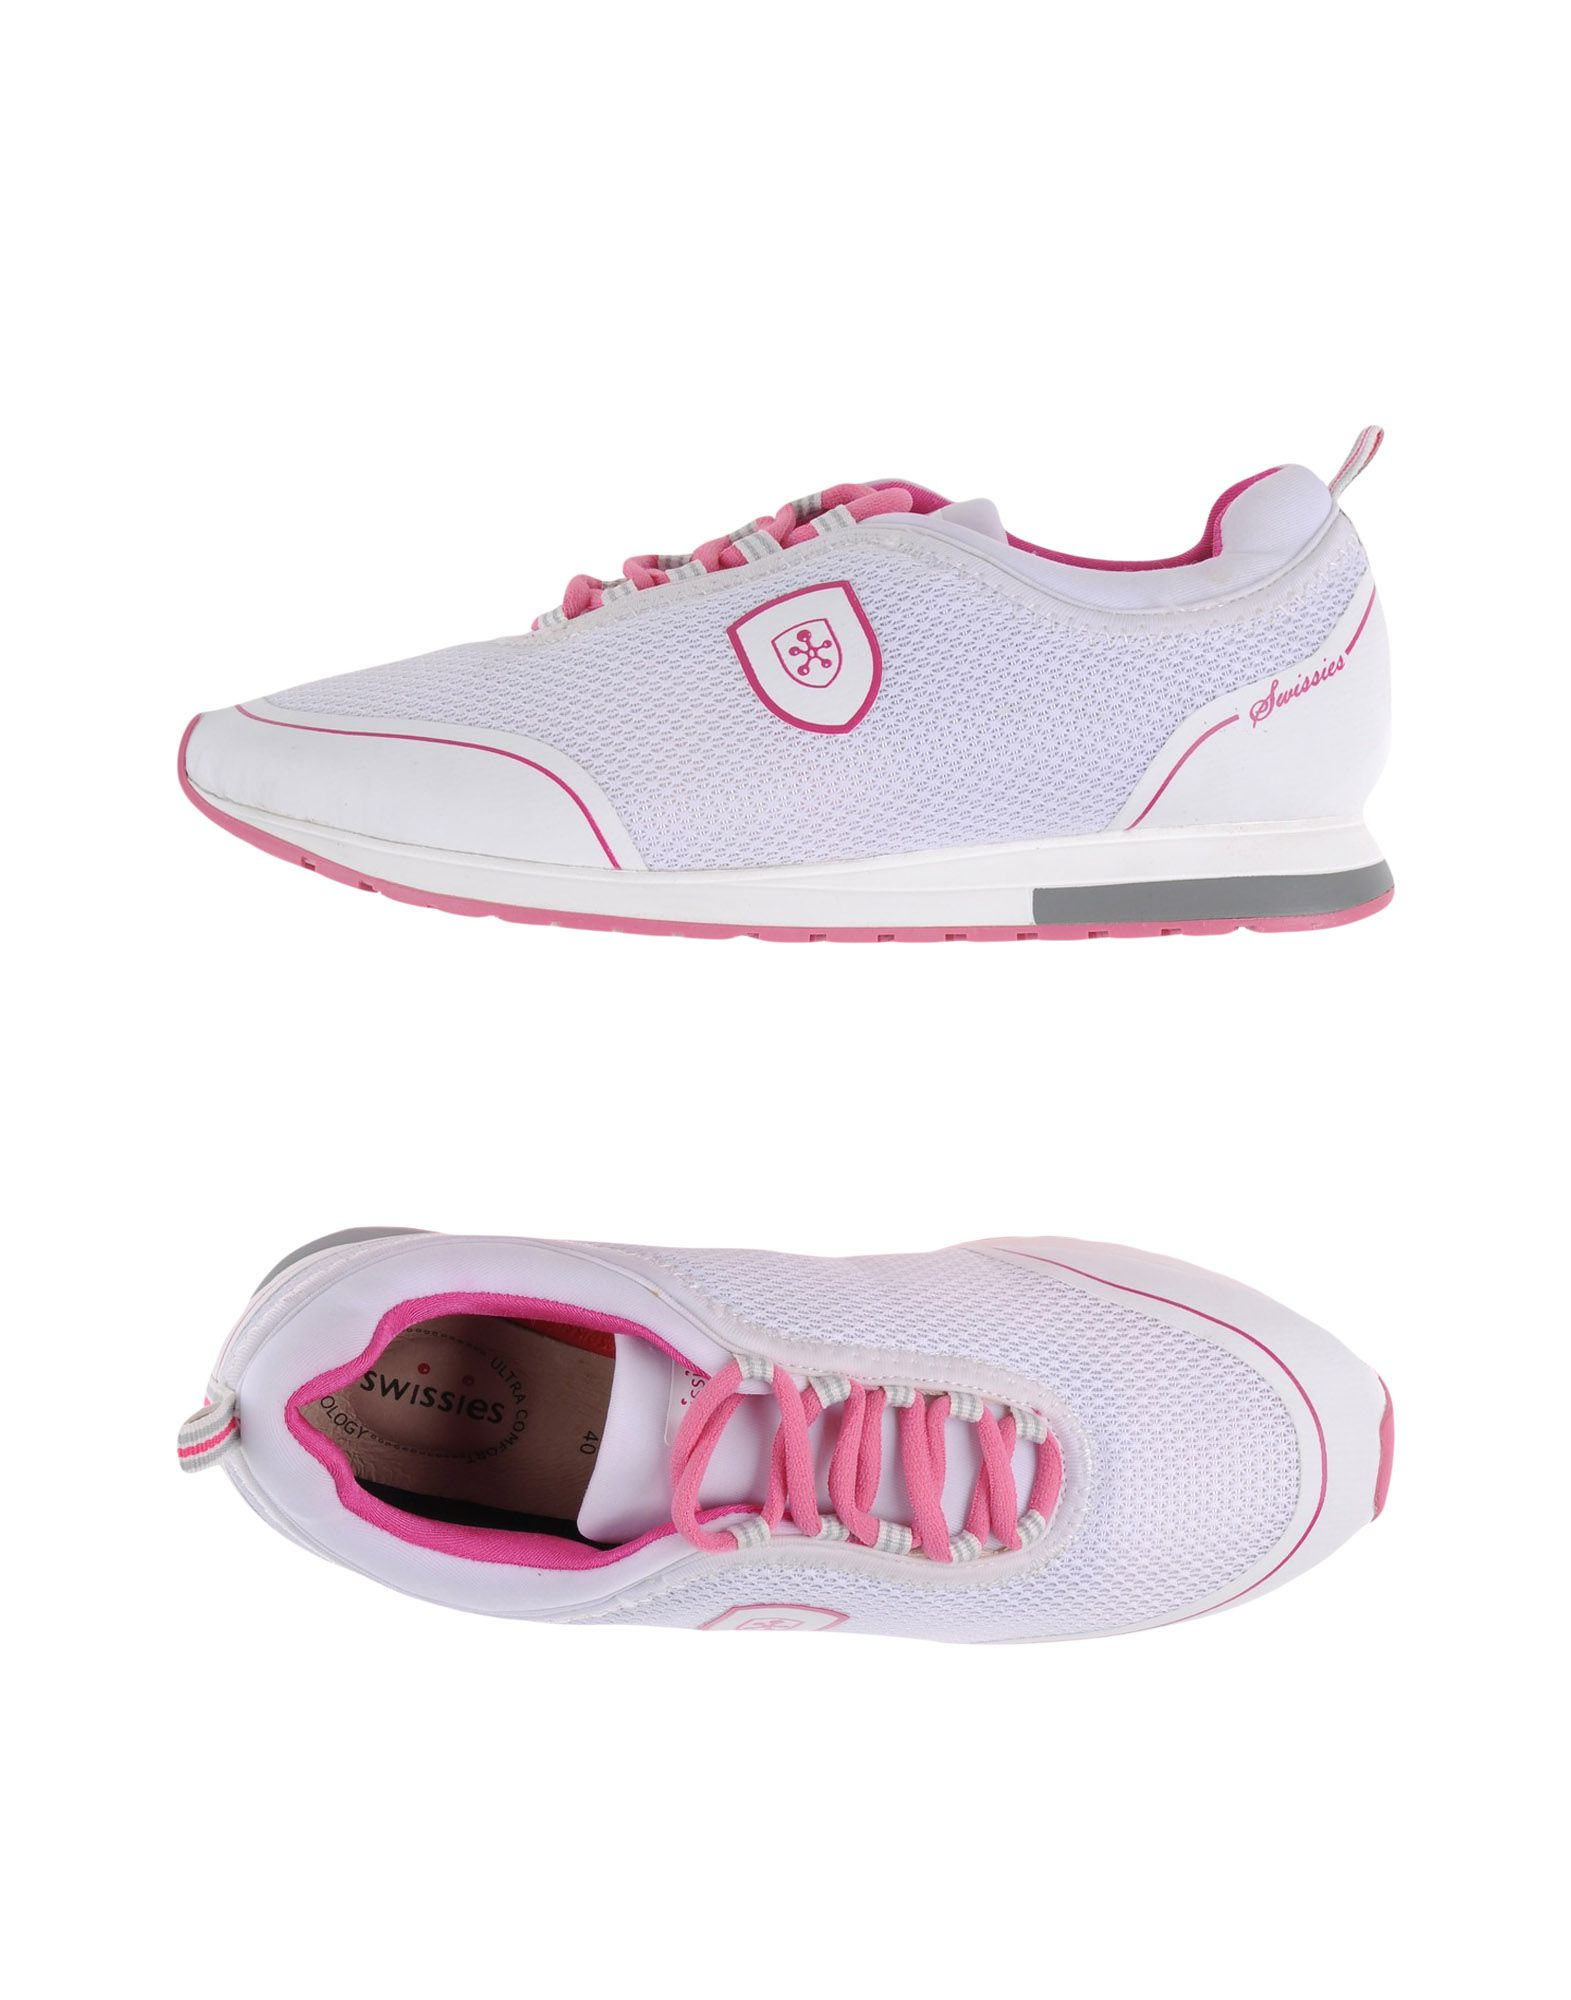 Sneakers Swissies Femme - Sneakers Swissies sur